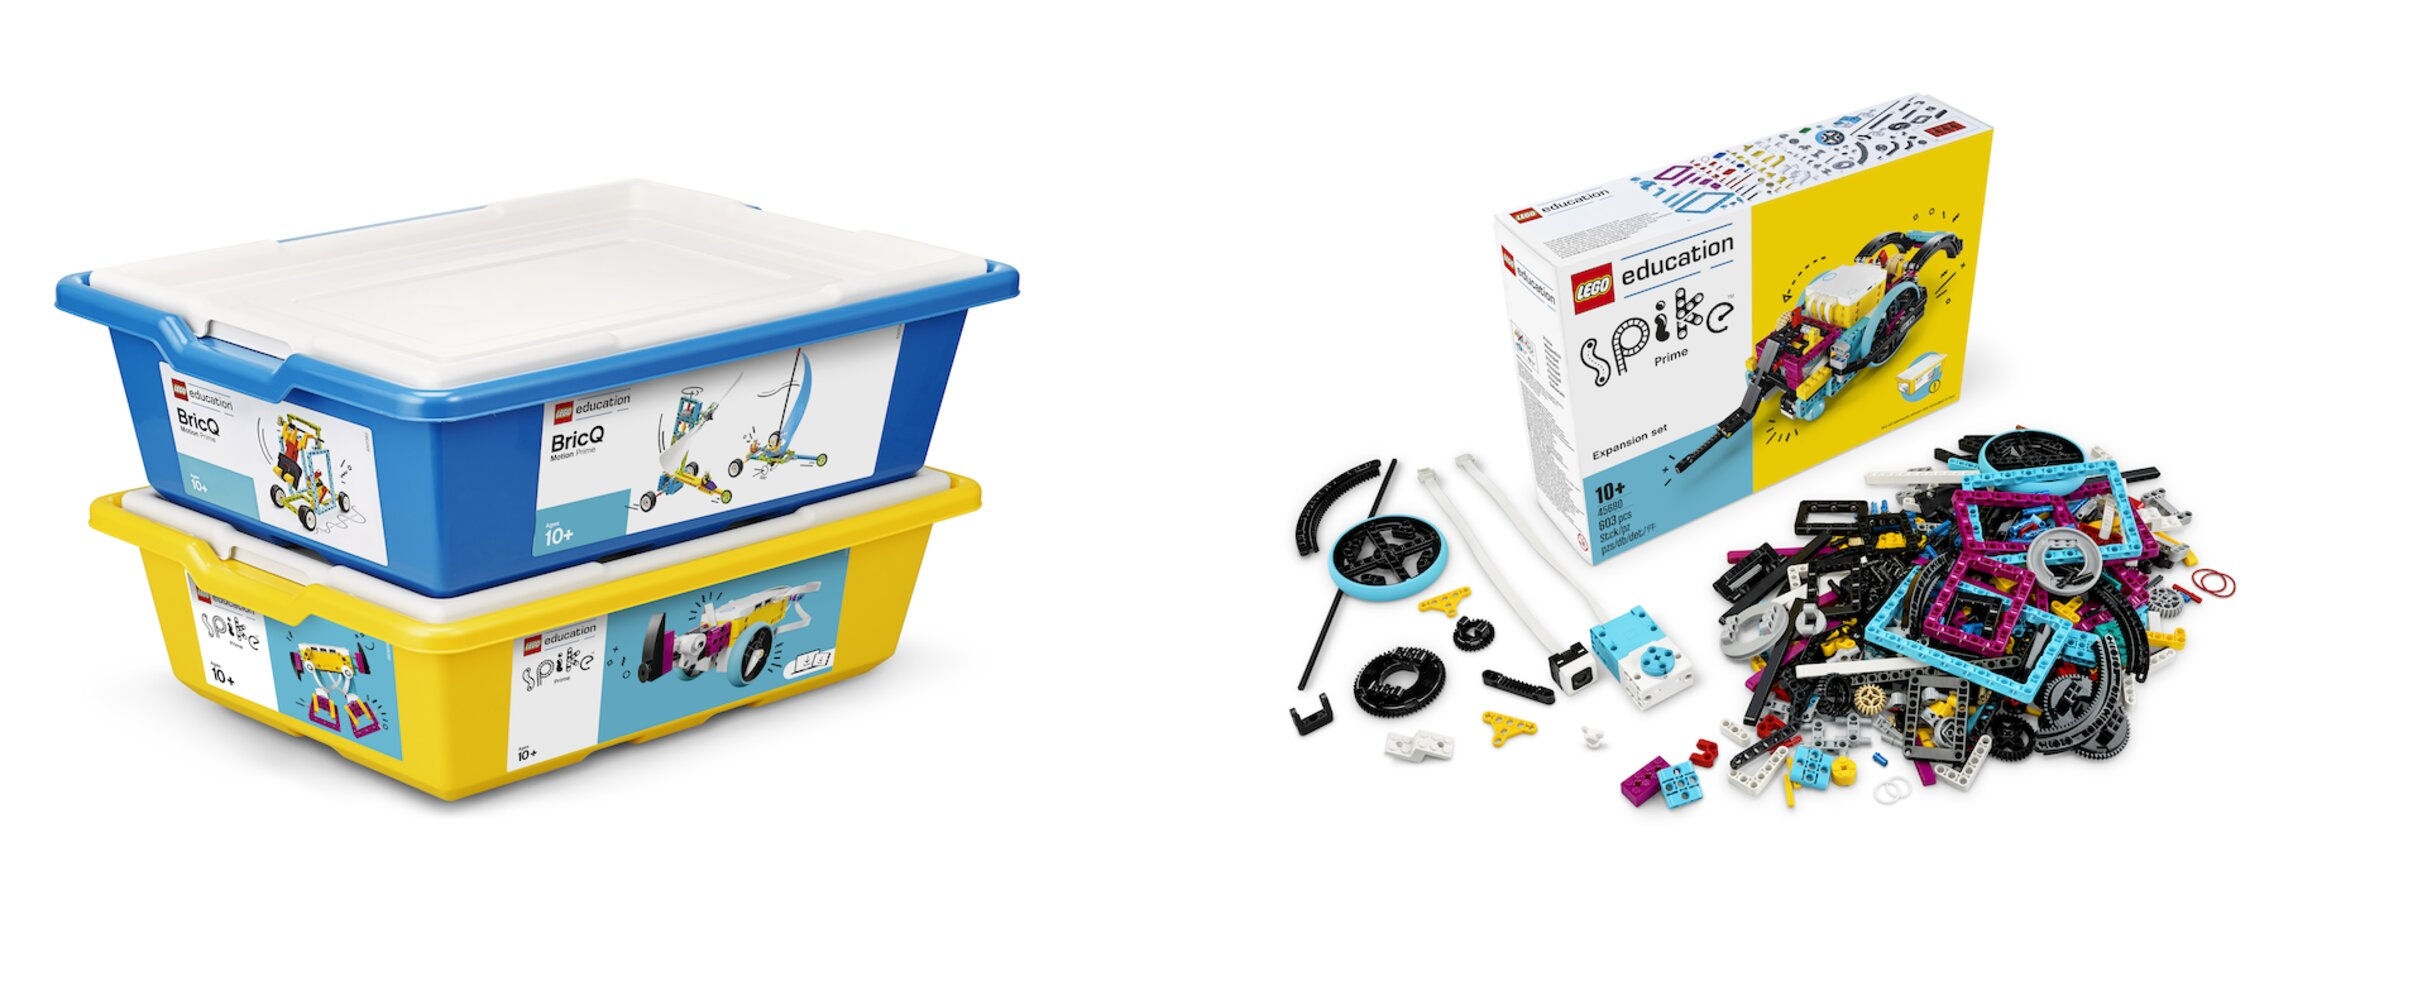 At Home STEAM Learning Bundle